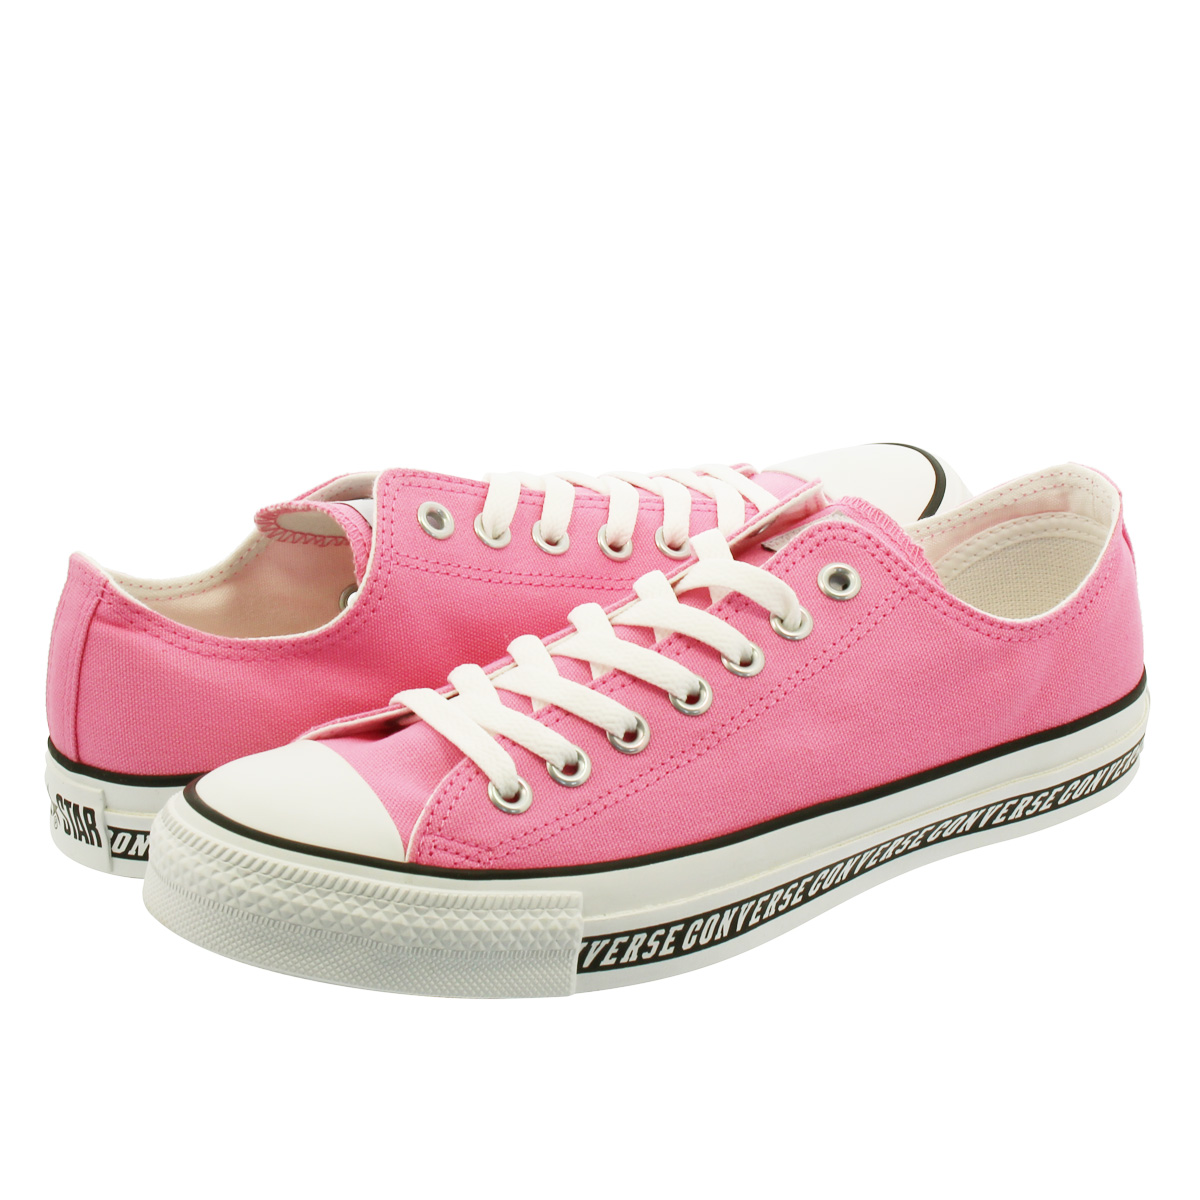 converse all star pink